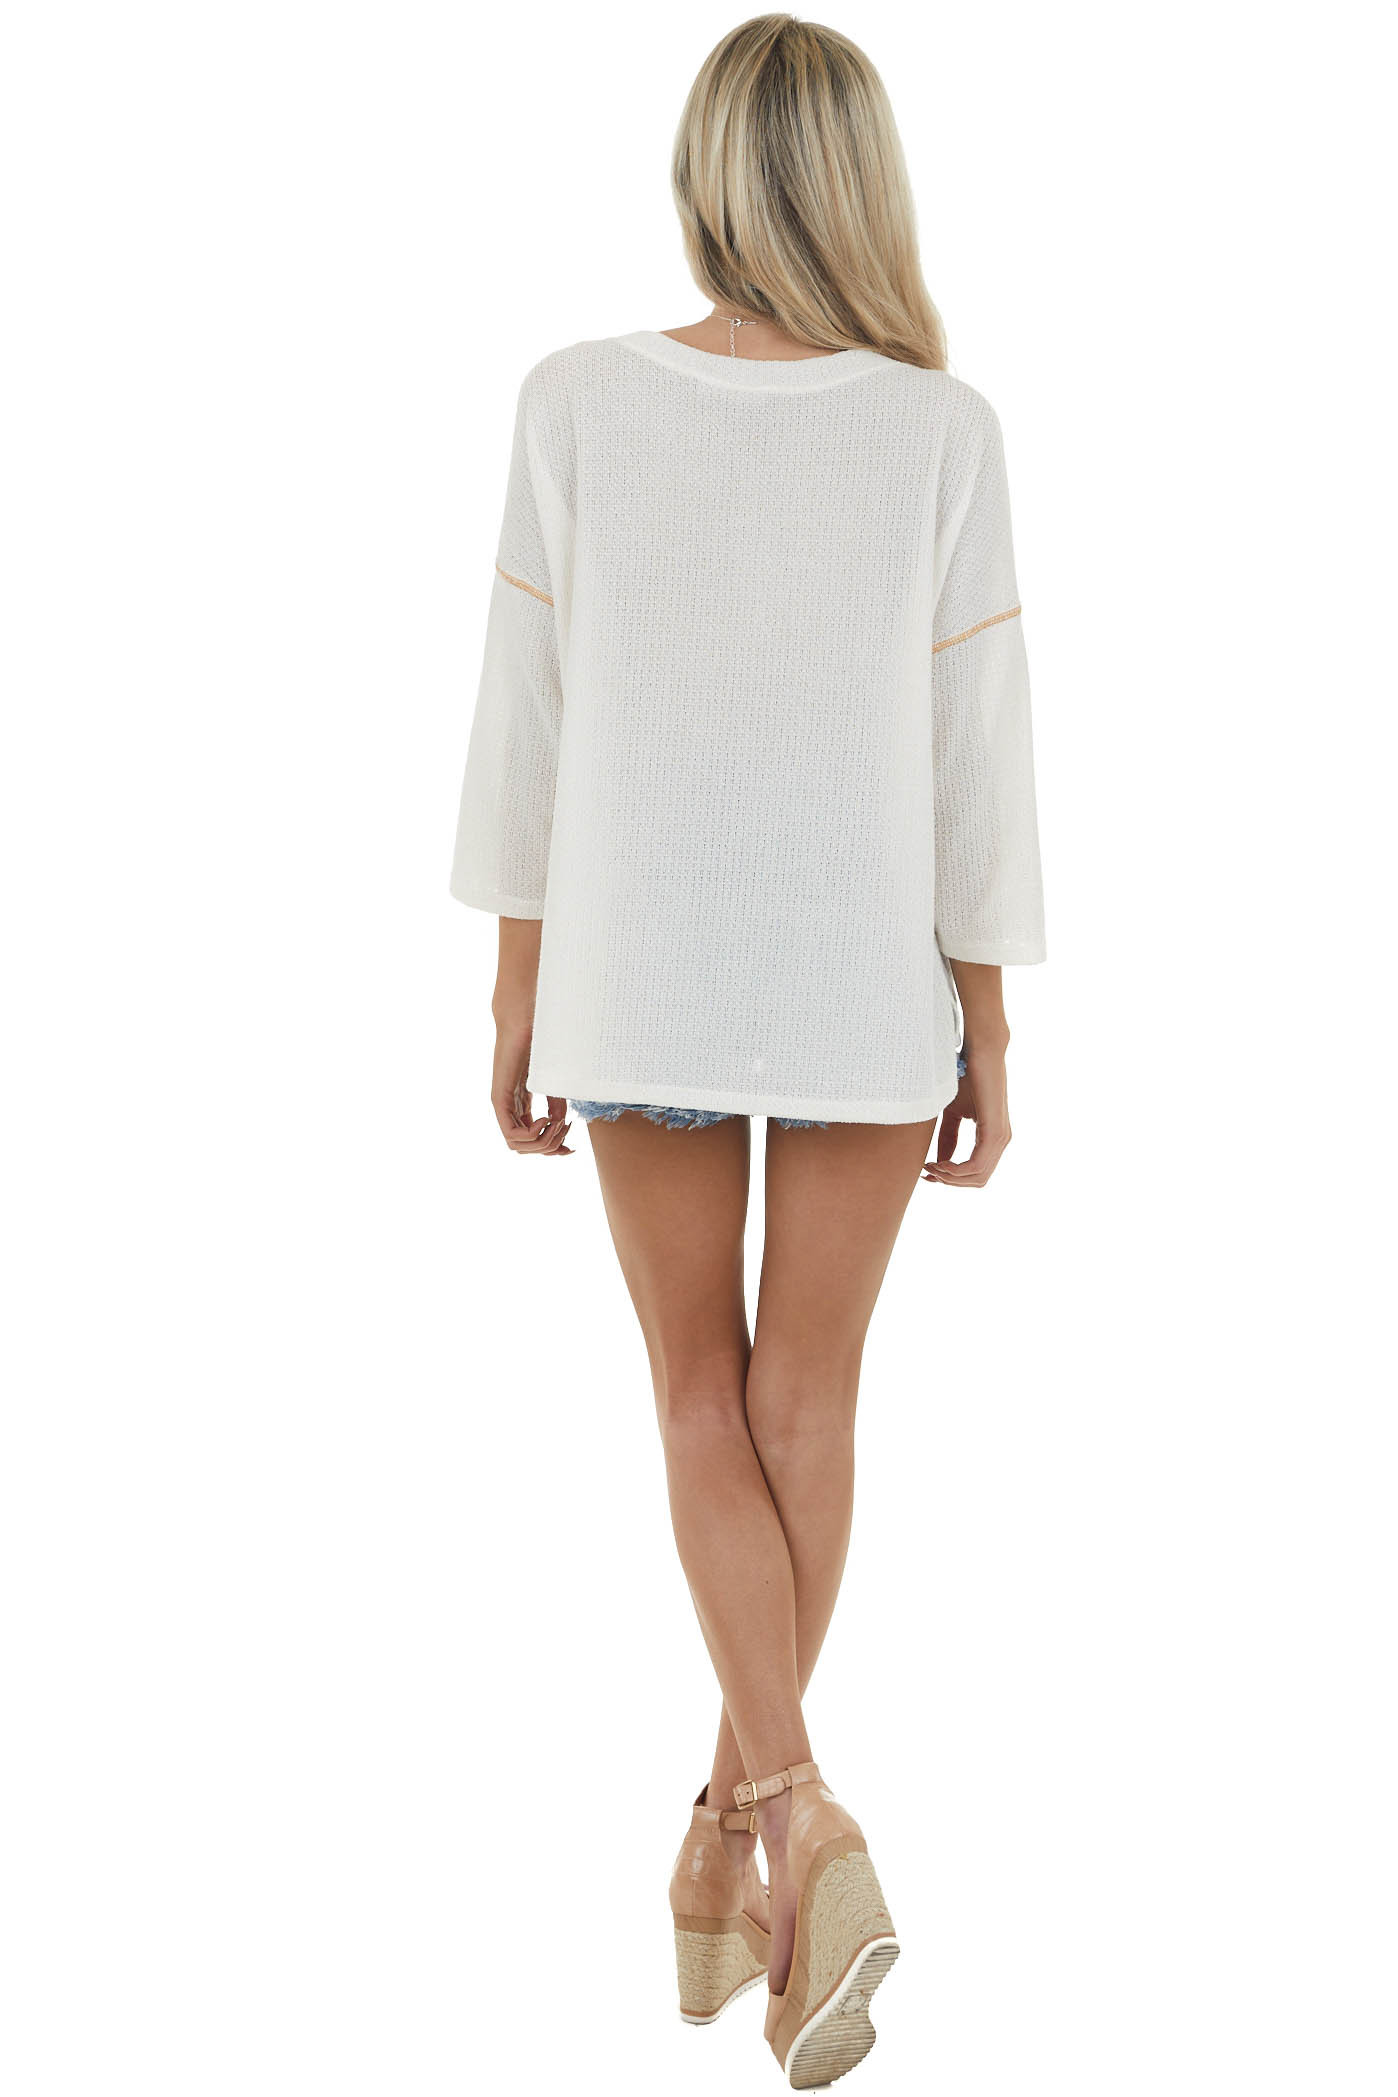 Cream Drop Shoulder Textured Knit Top with Side Slits